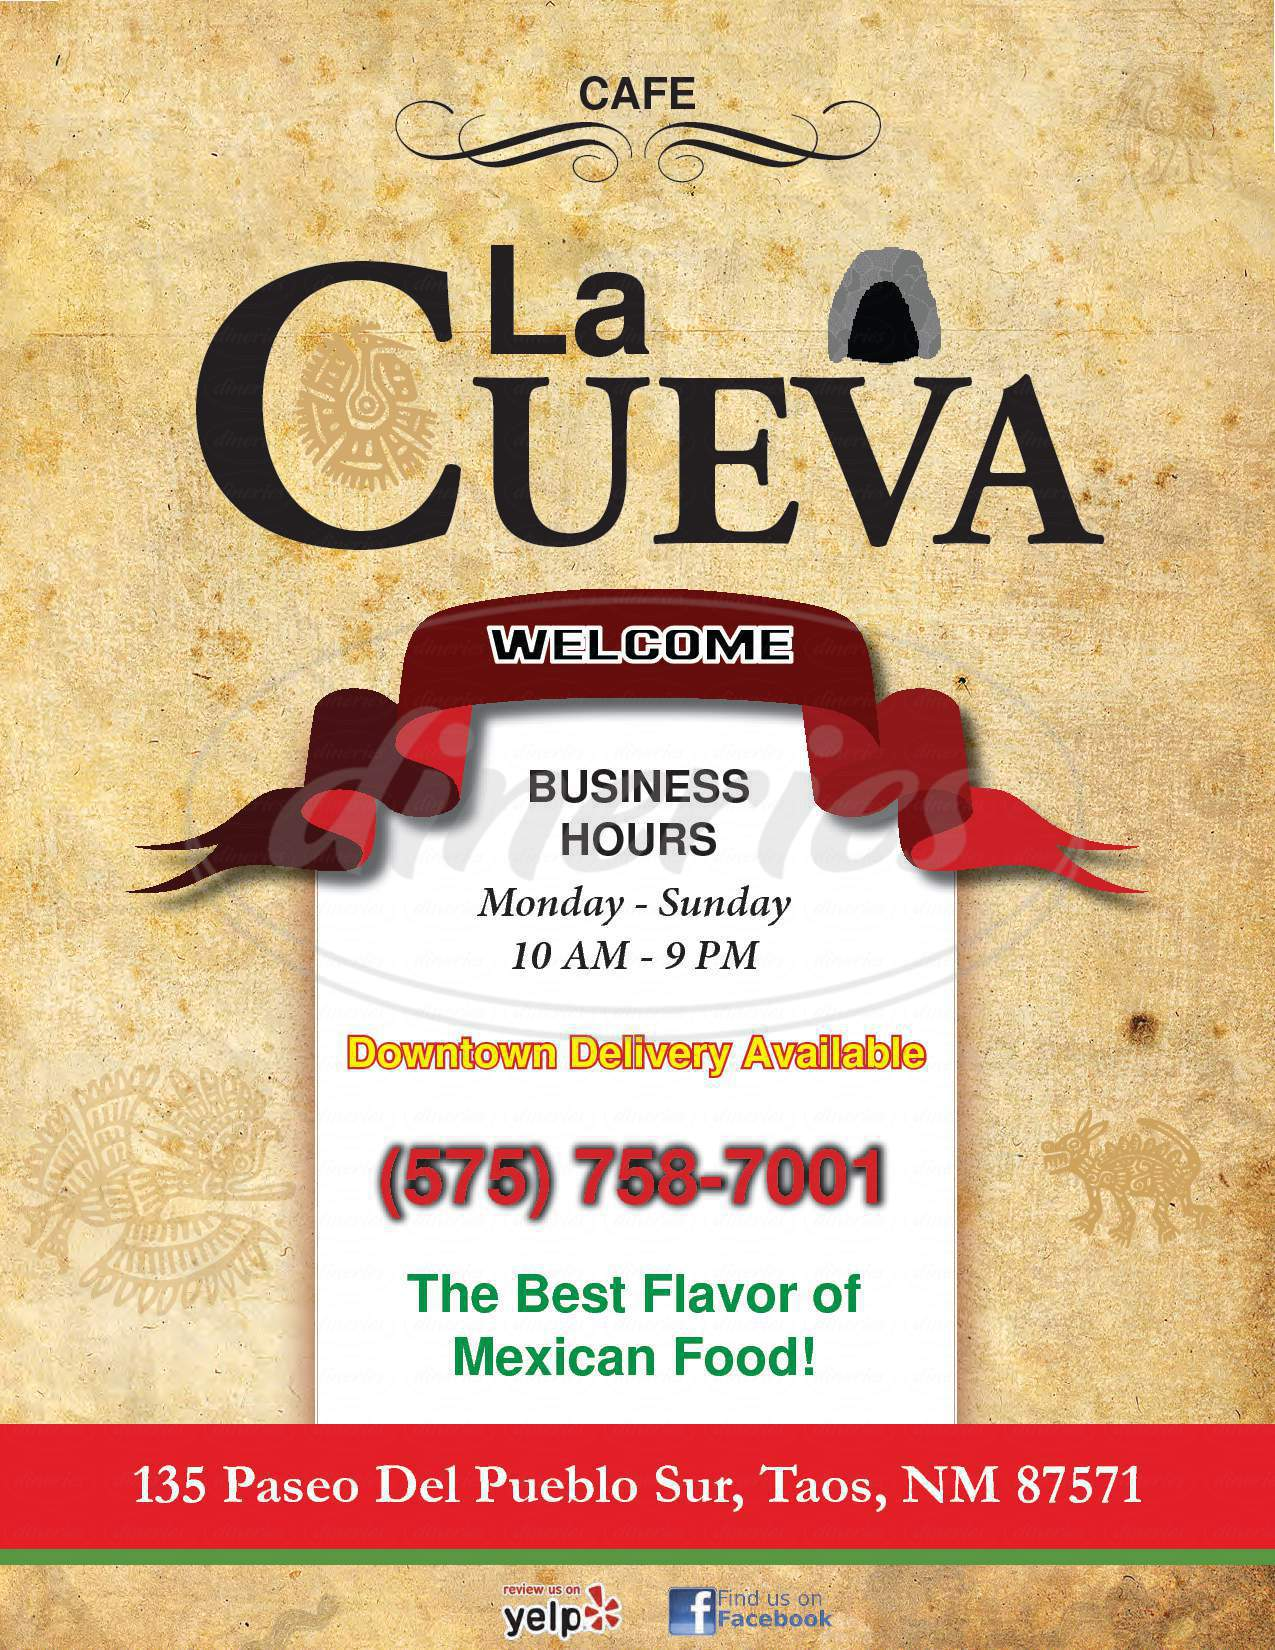 menu for La Cueva Cafe